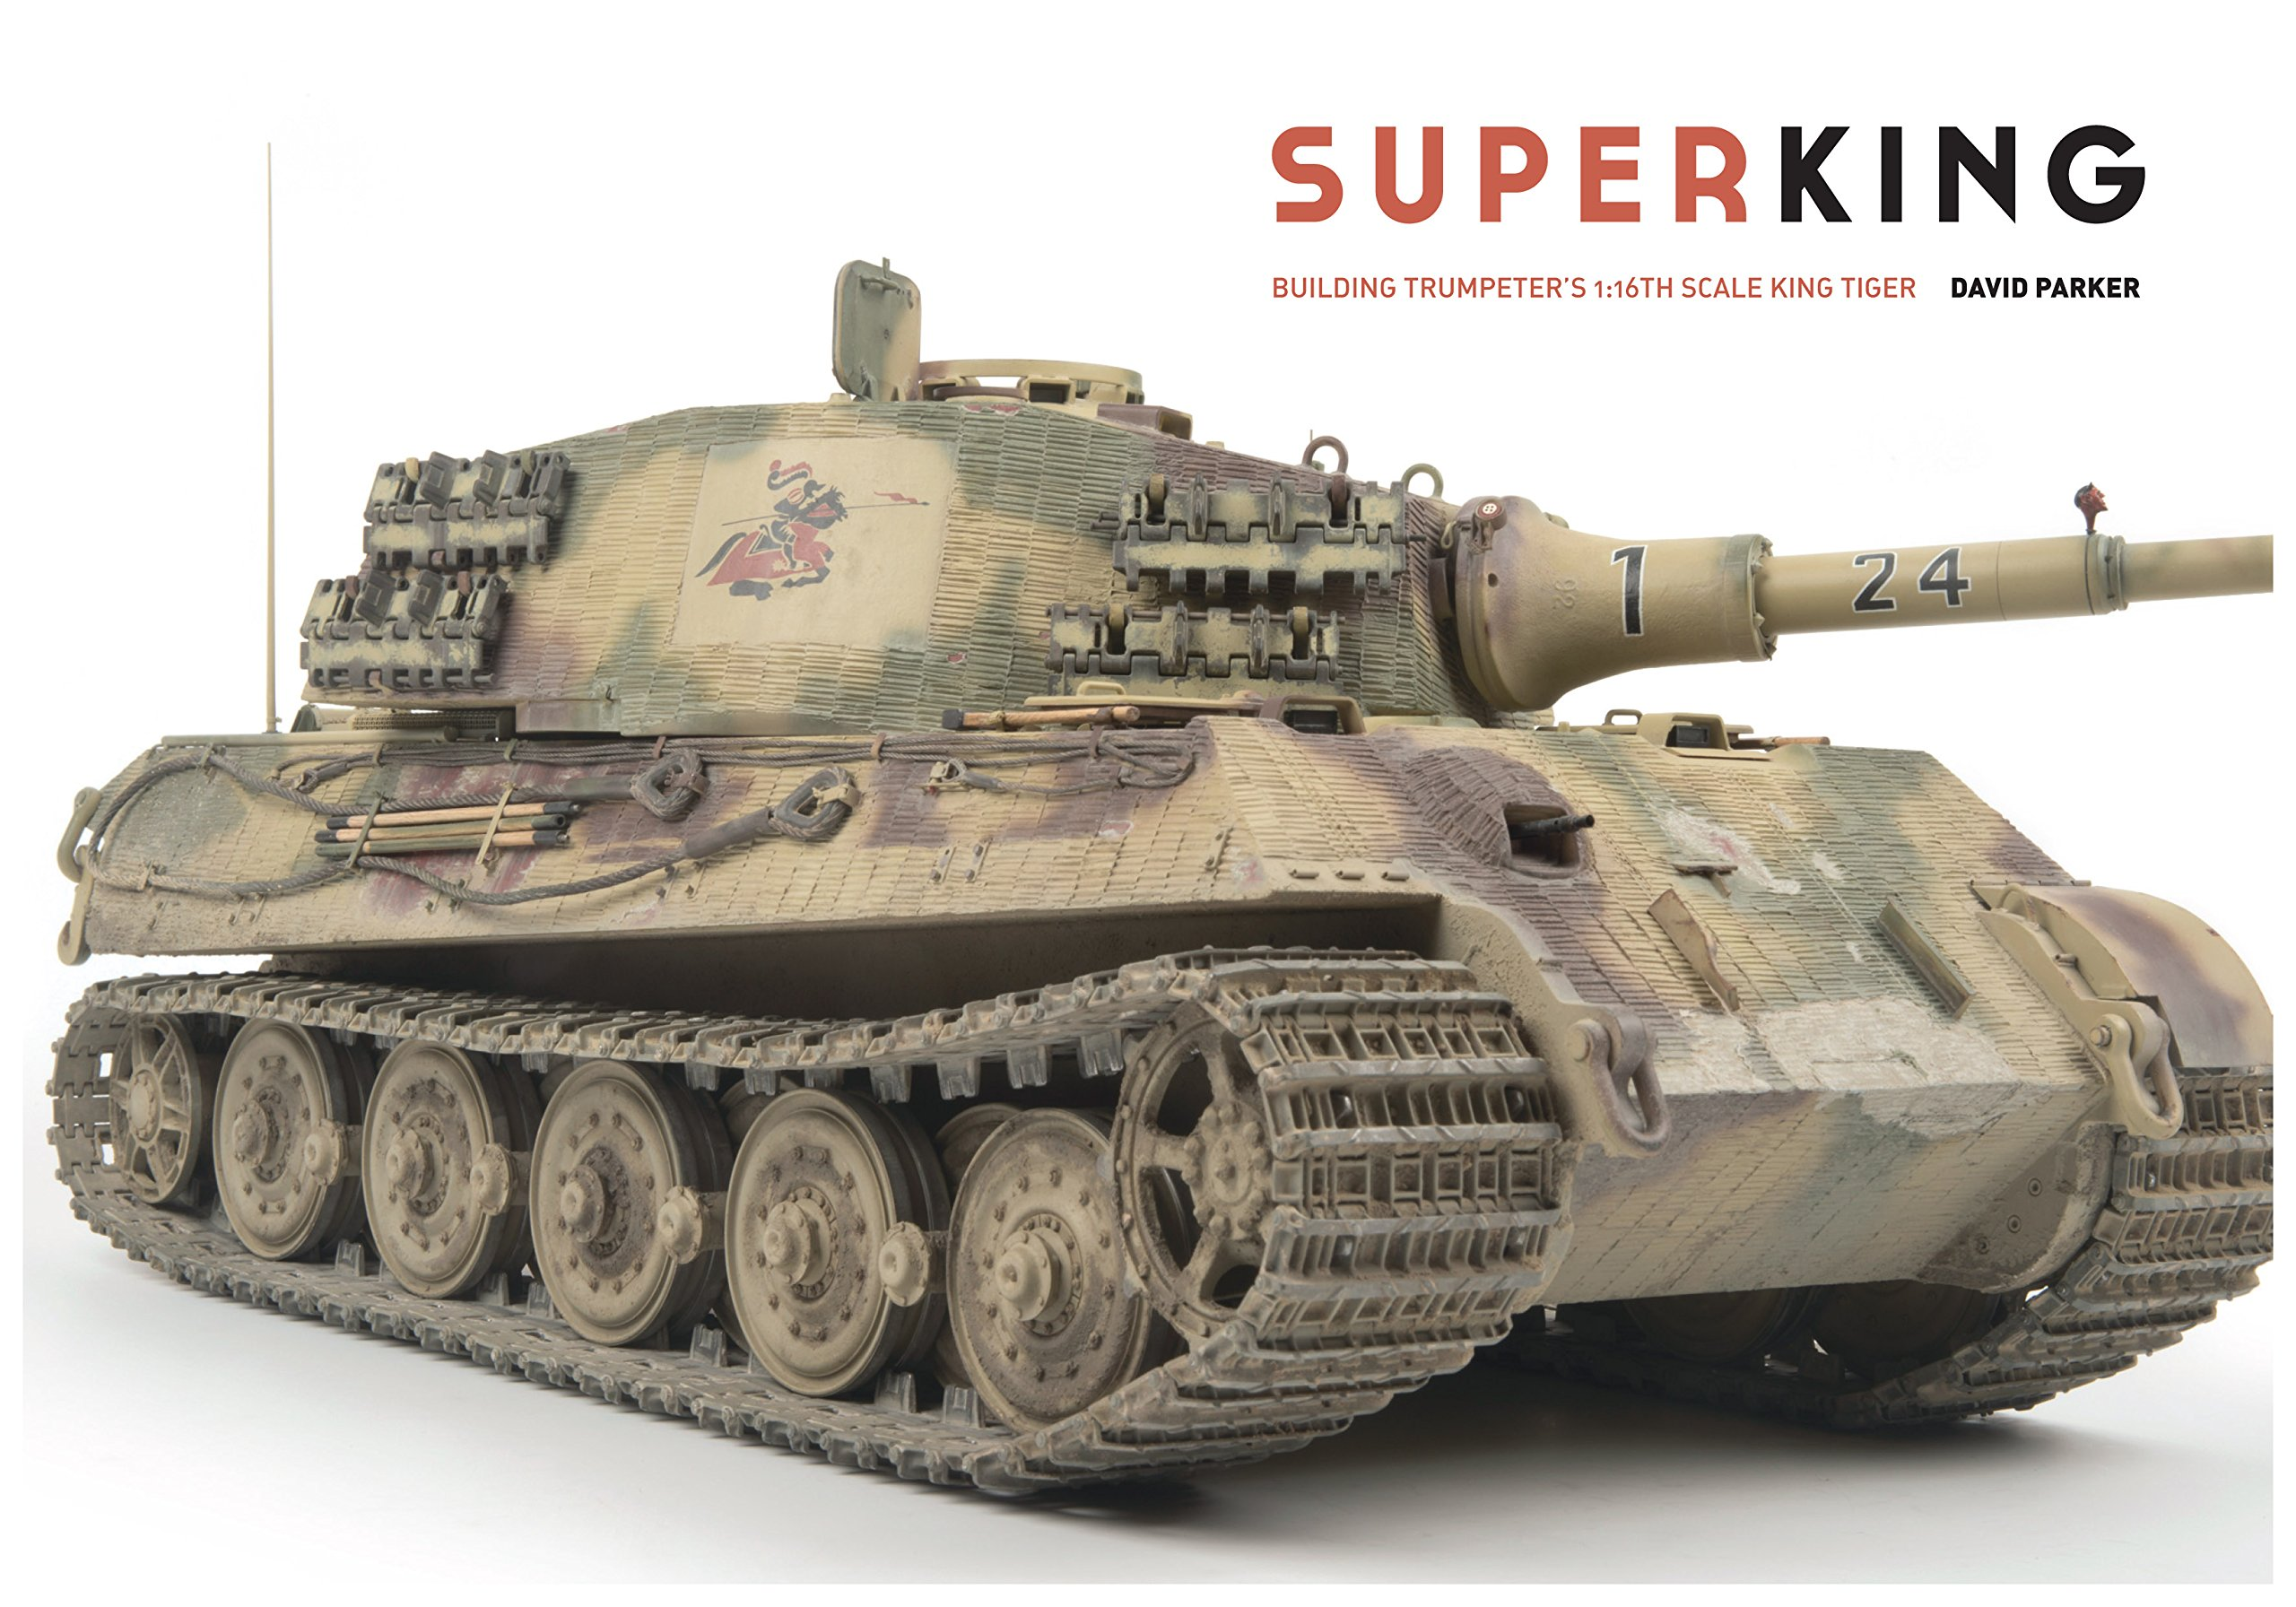 Superking: Building Trumpeter's 1:16th Schale King Tiger